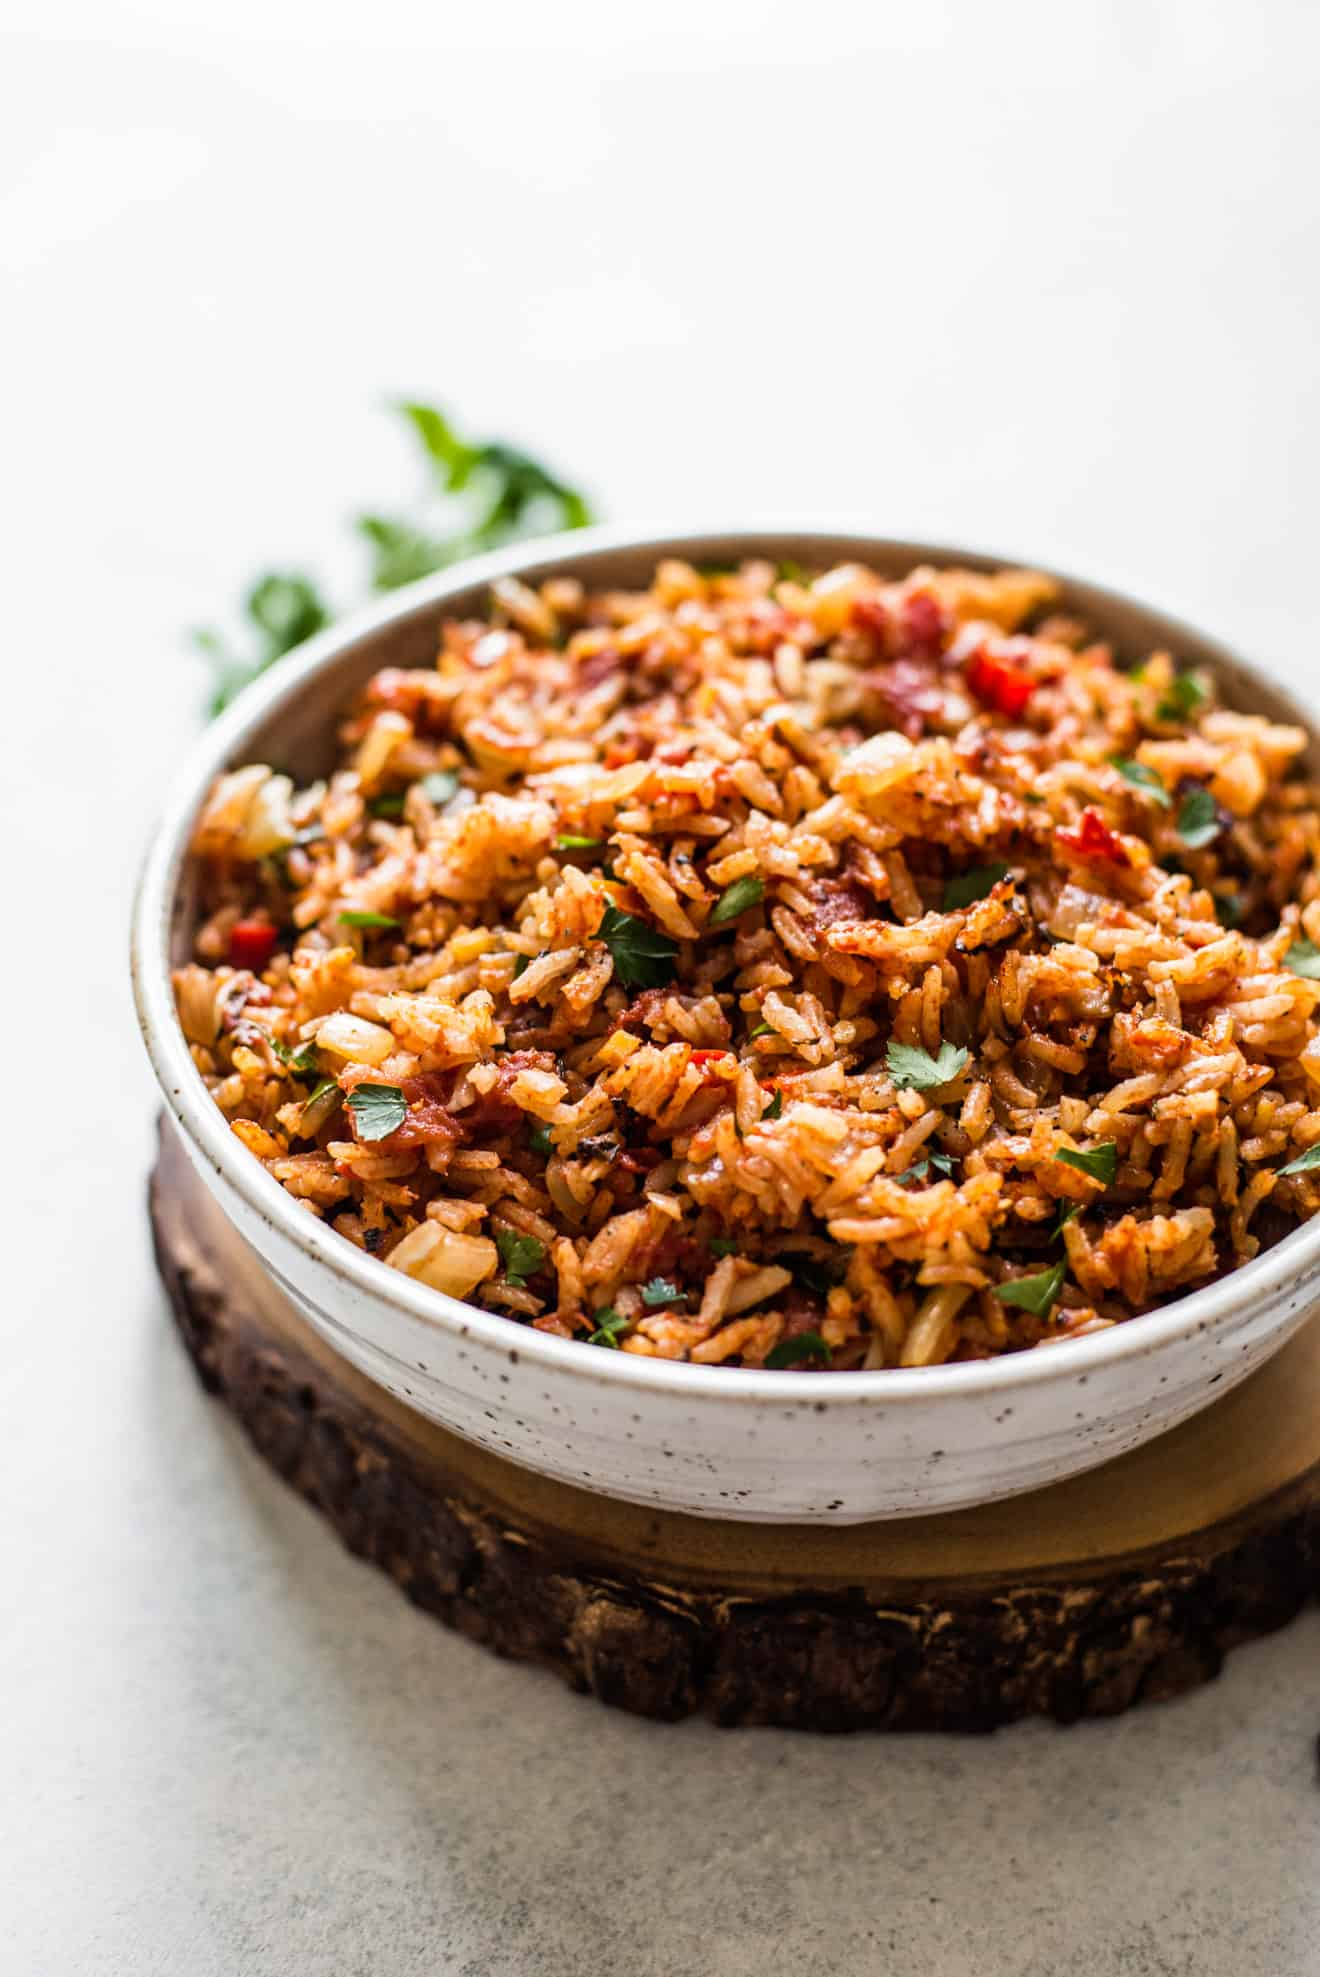 Filled with tomatoes, onions and spices, this jollof rice is ready in 45 minutes!